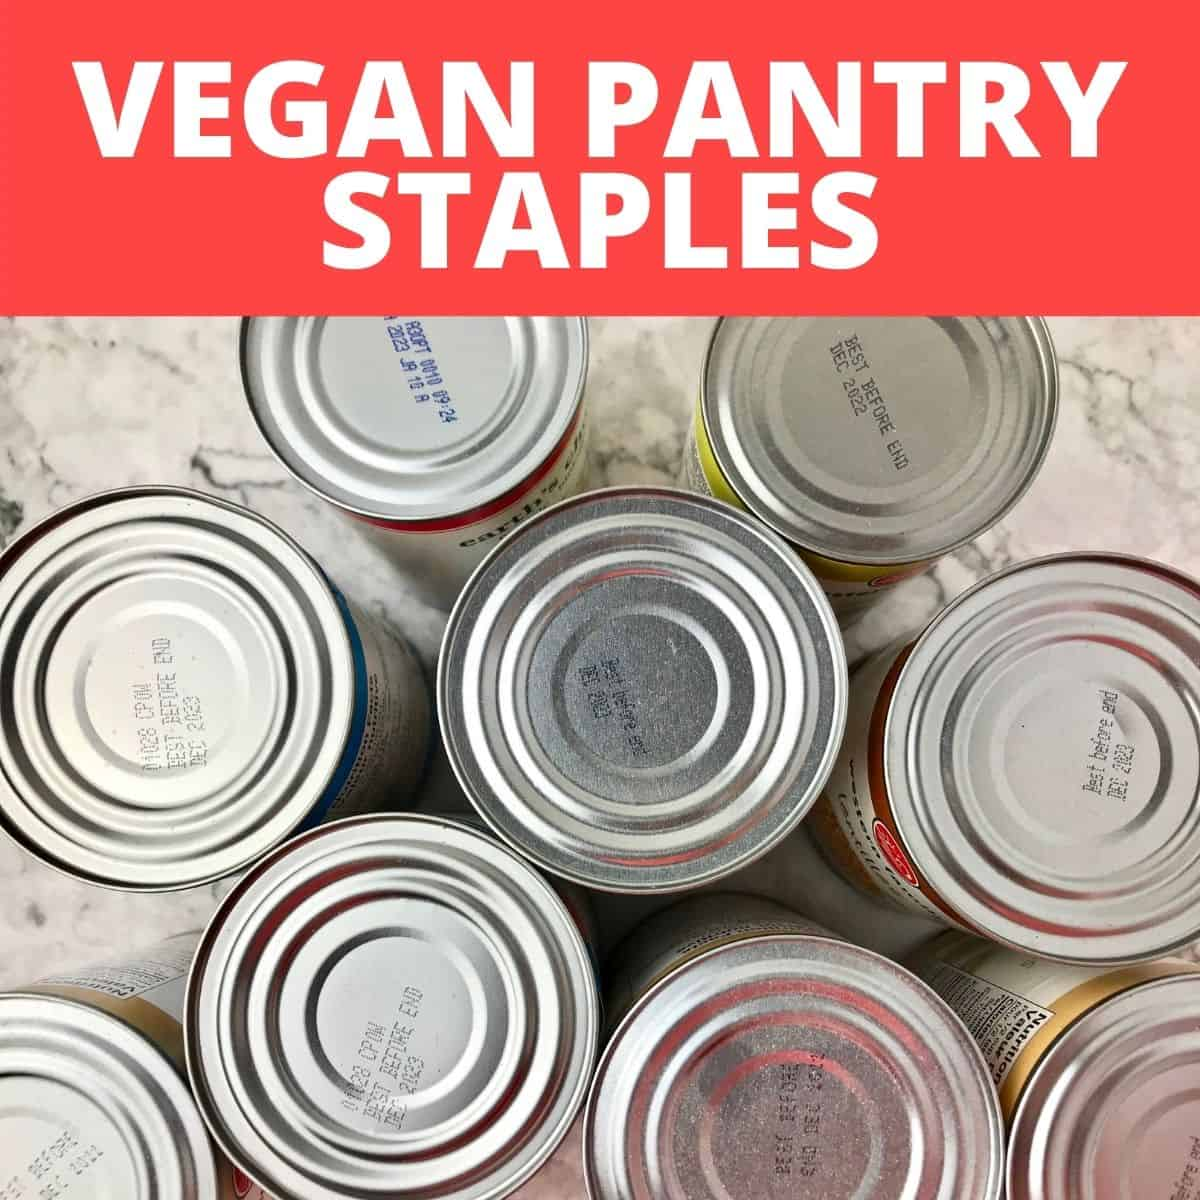 """The tops of several tin cans below text that says, """"Vegan Pantry Staples."""""""